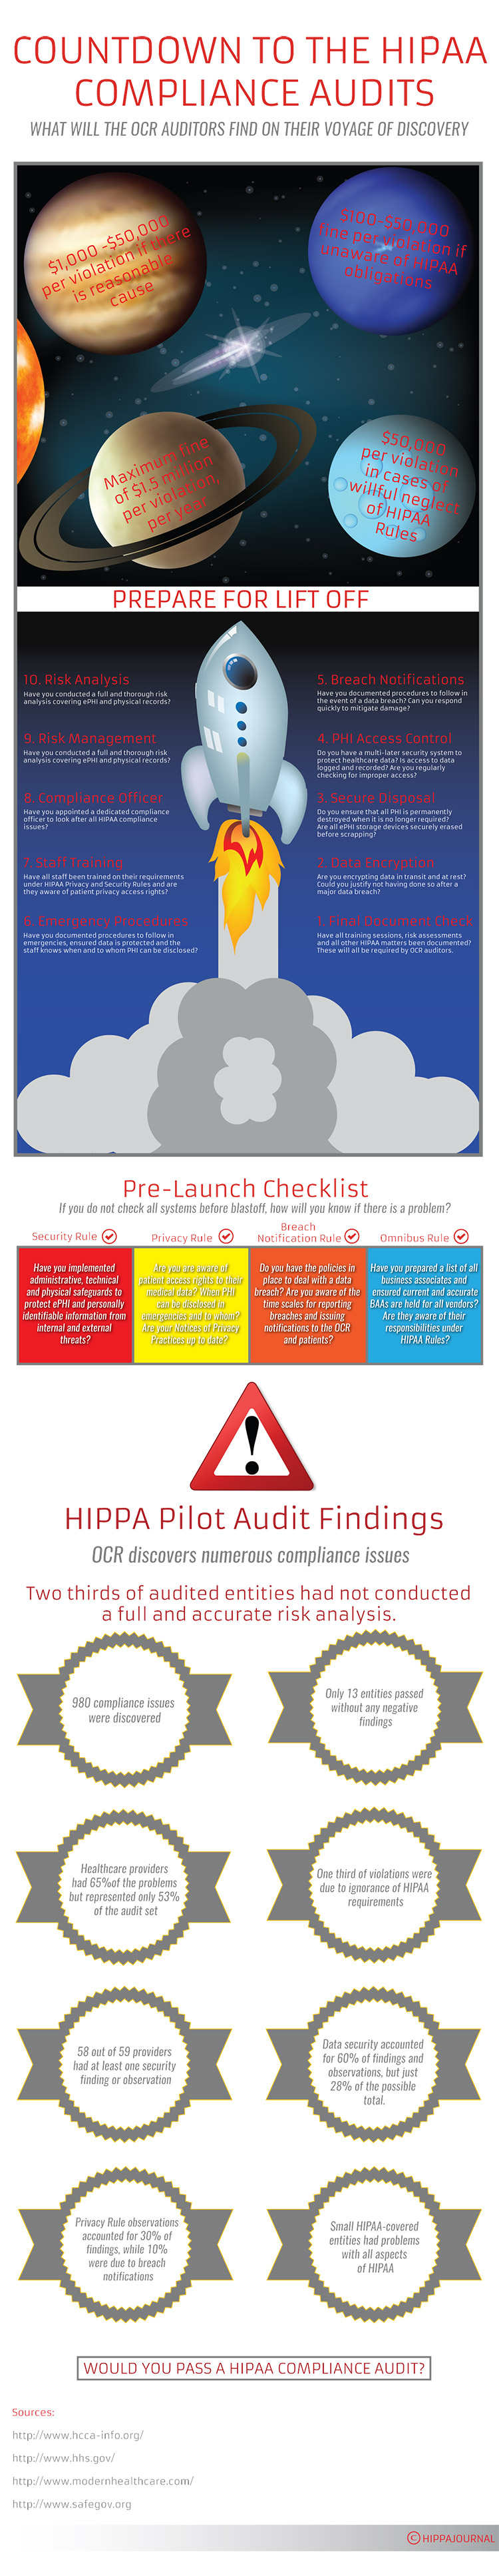 Countdown to the HIPAA Compliance Audits